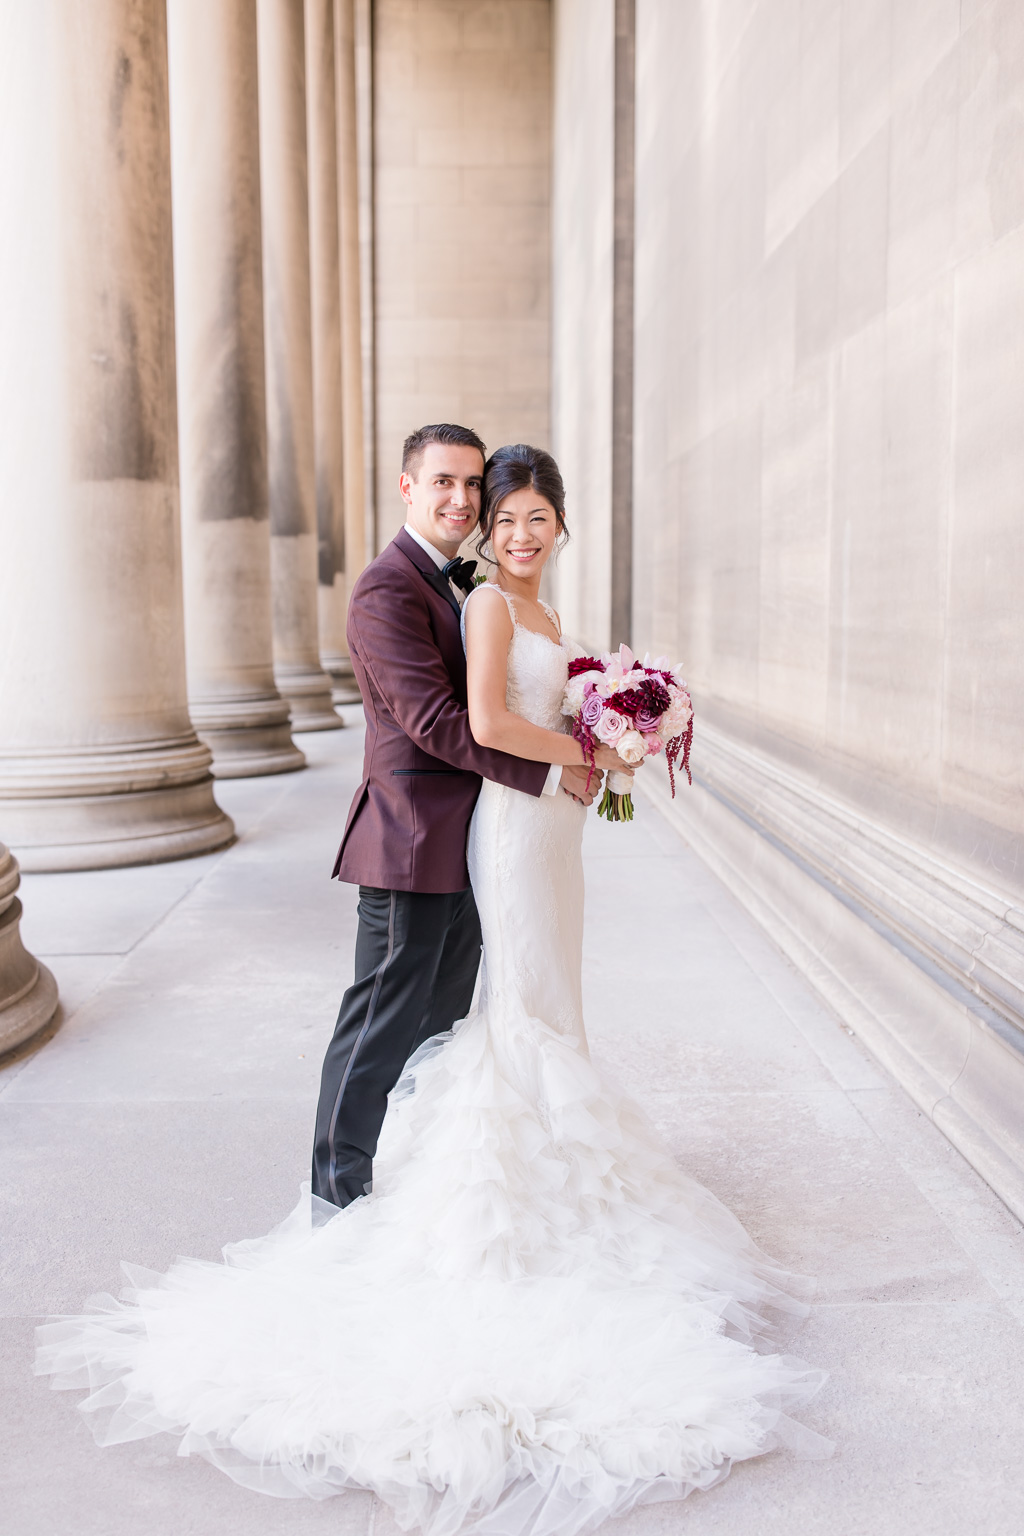 beautiful wedding portrait at the mellon institute library